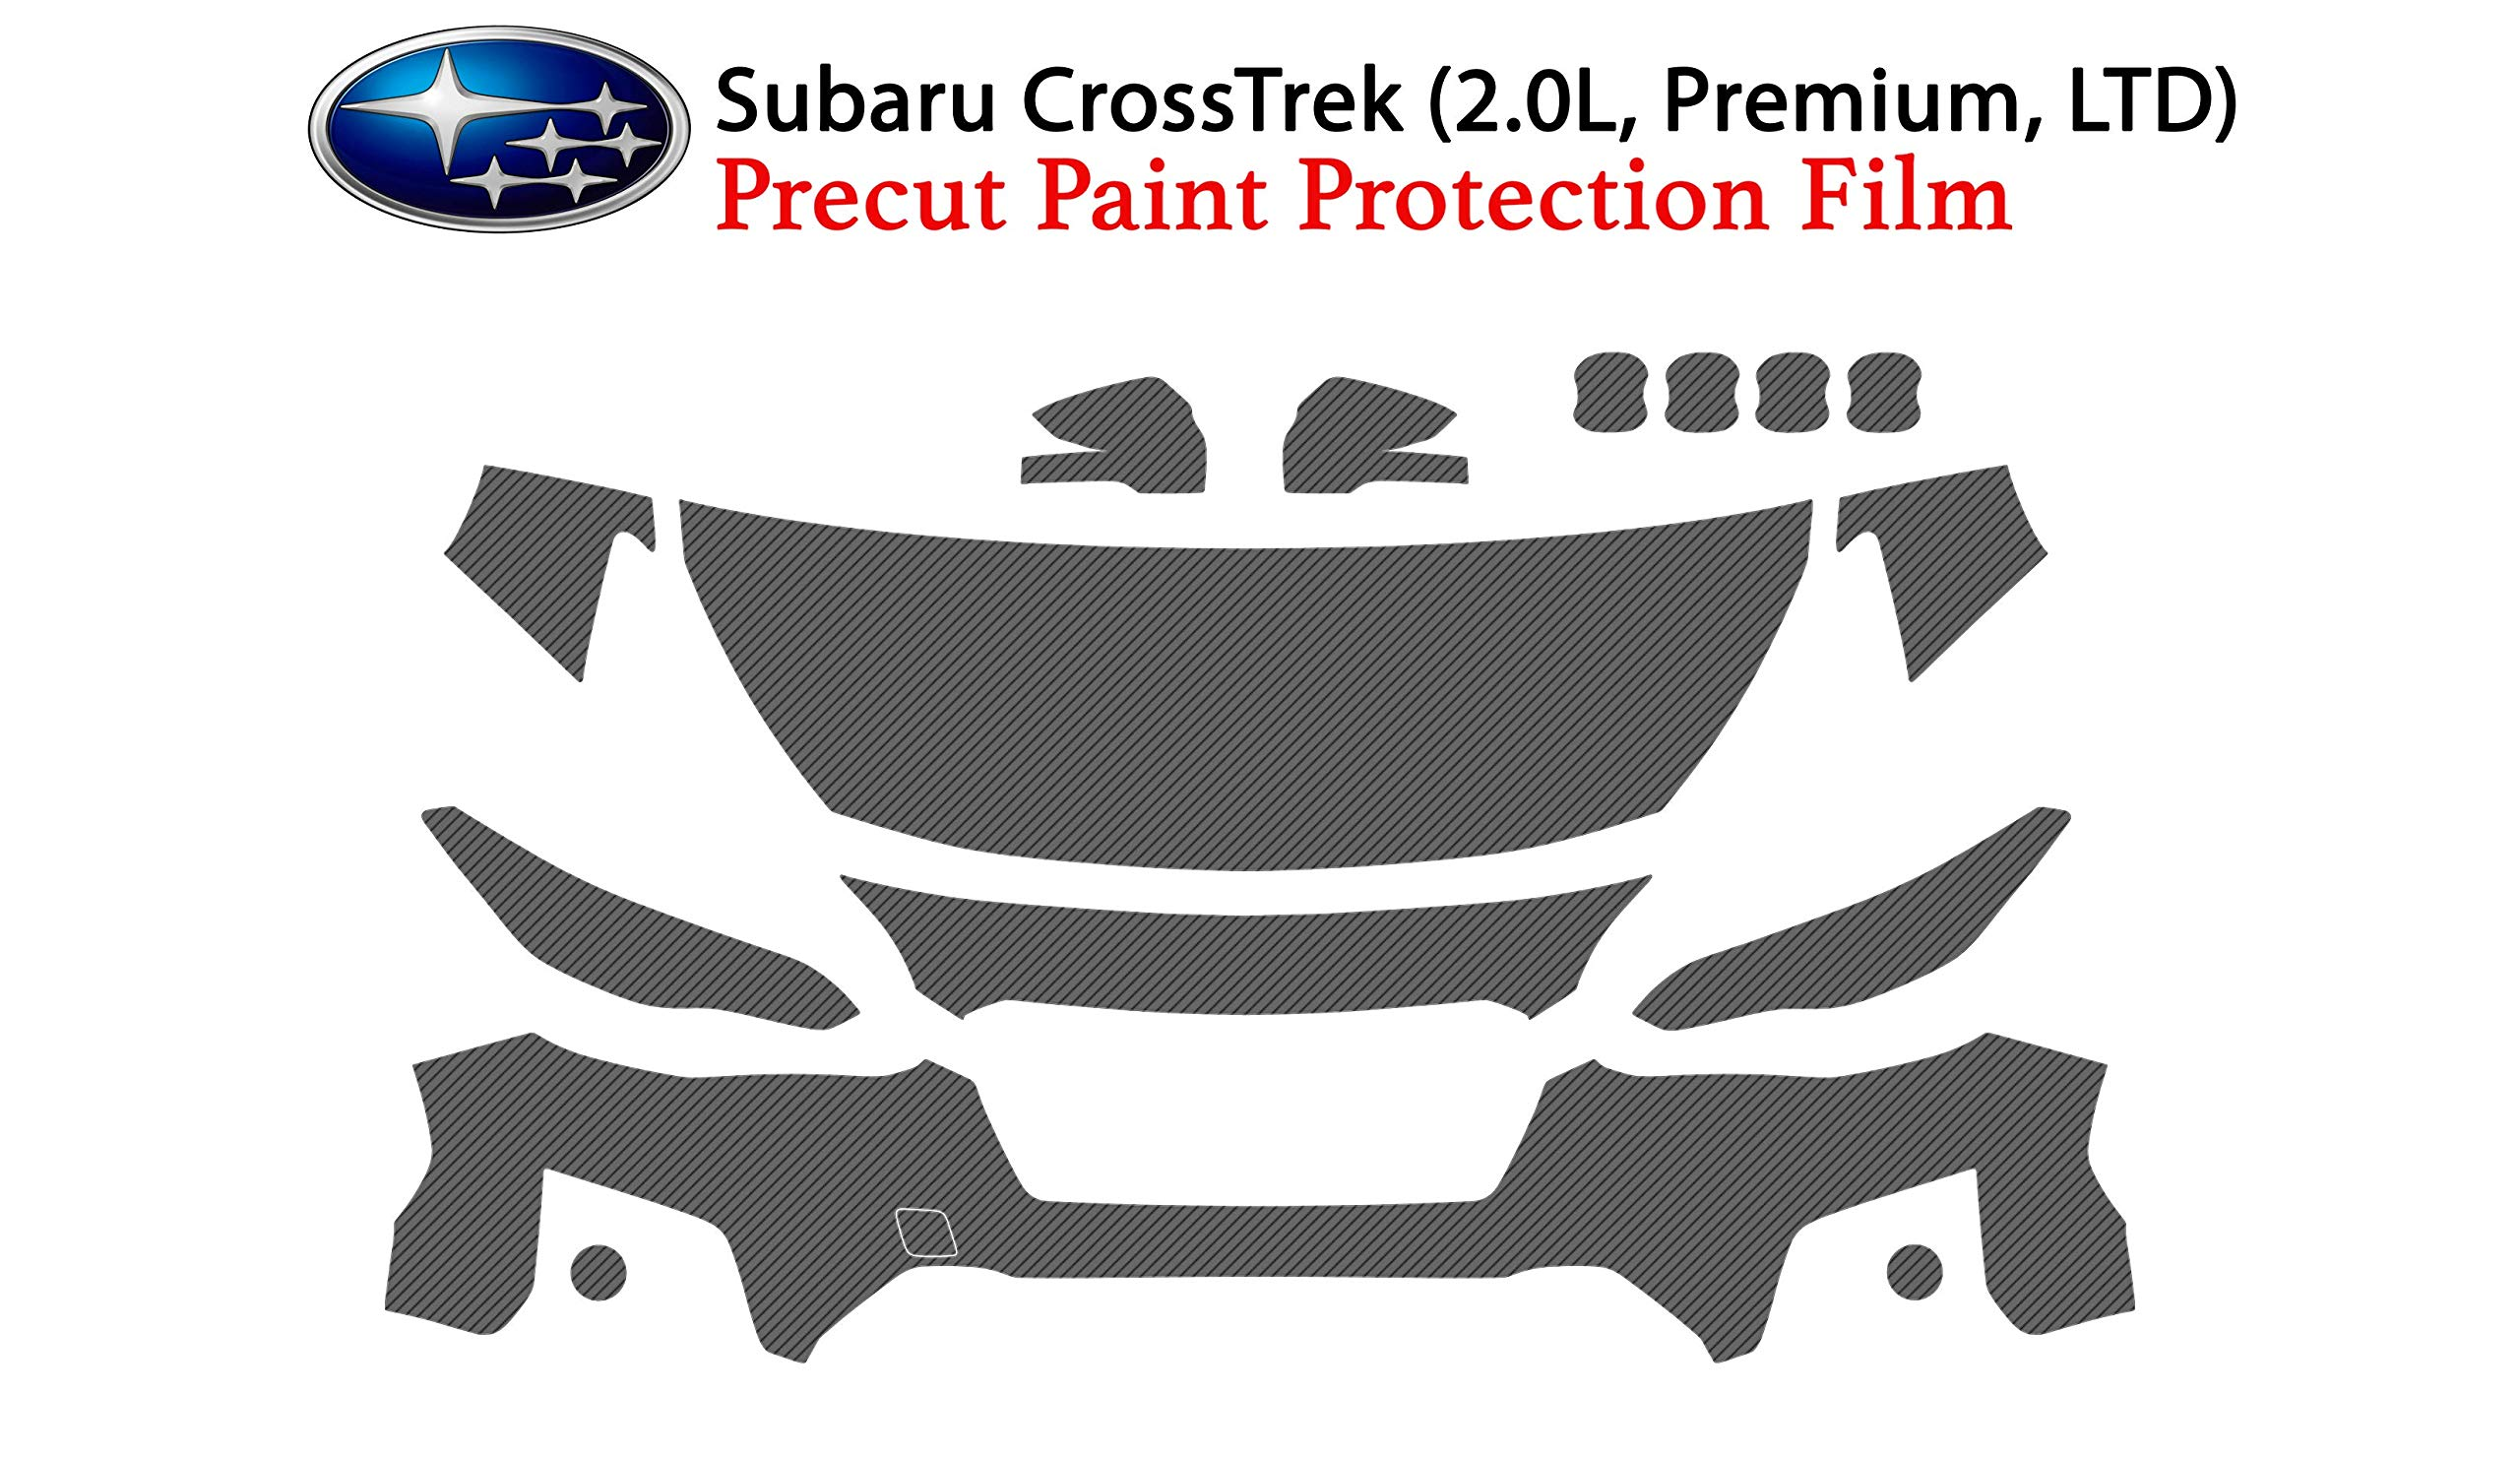 The Online Liquidator Full Front Protective Film CrossTrek 2018 & 2019 - Clear Bra Car Paint Shield Cover